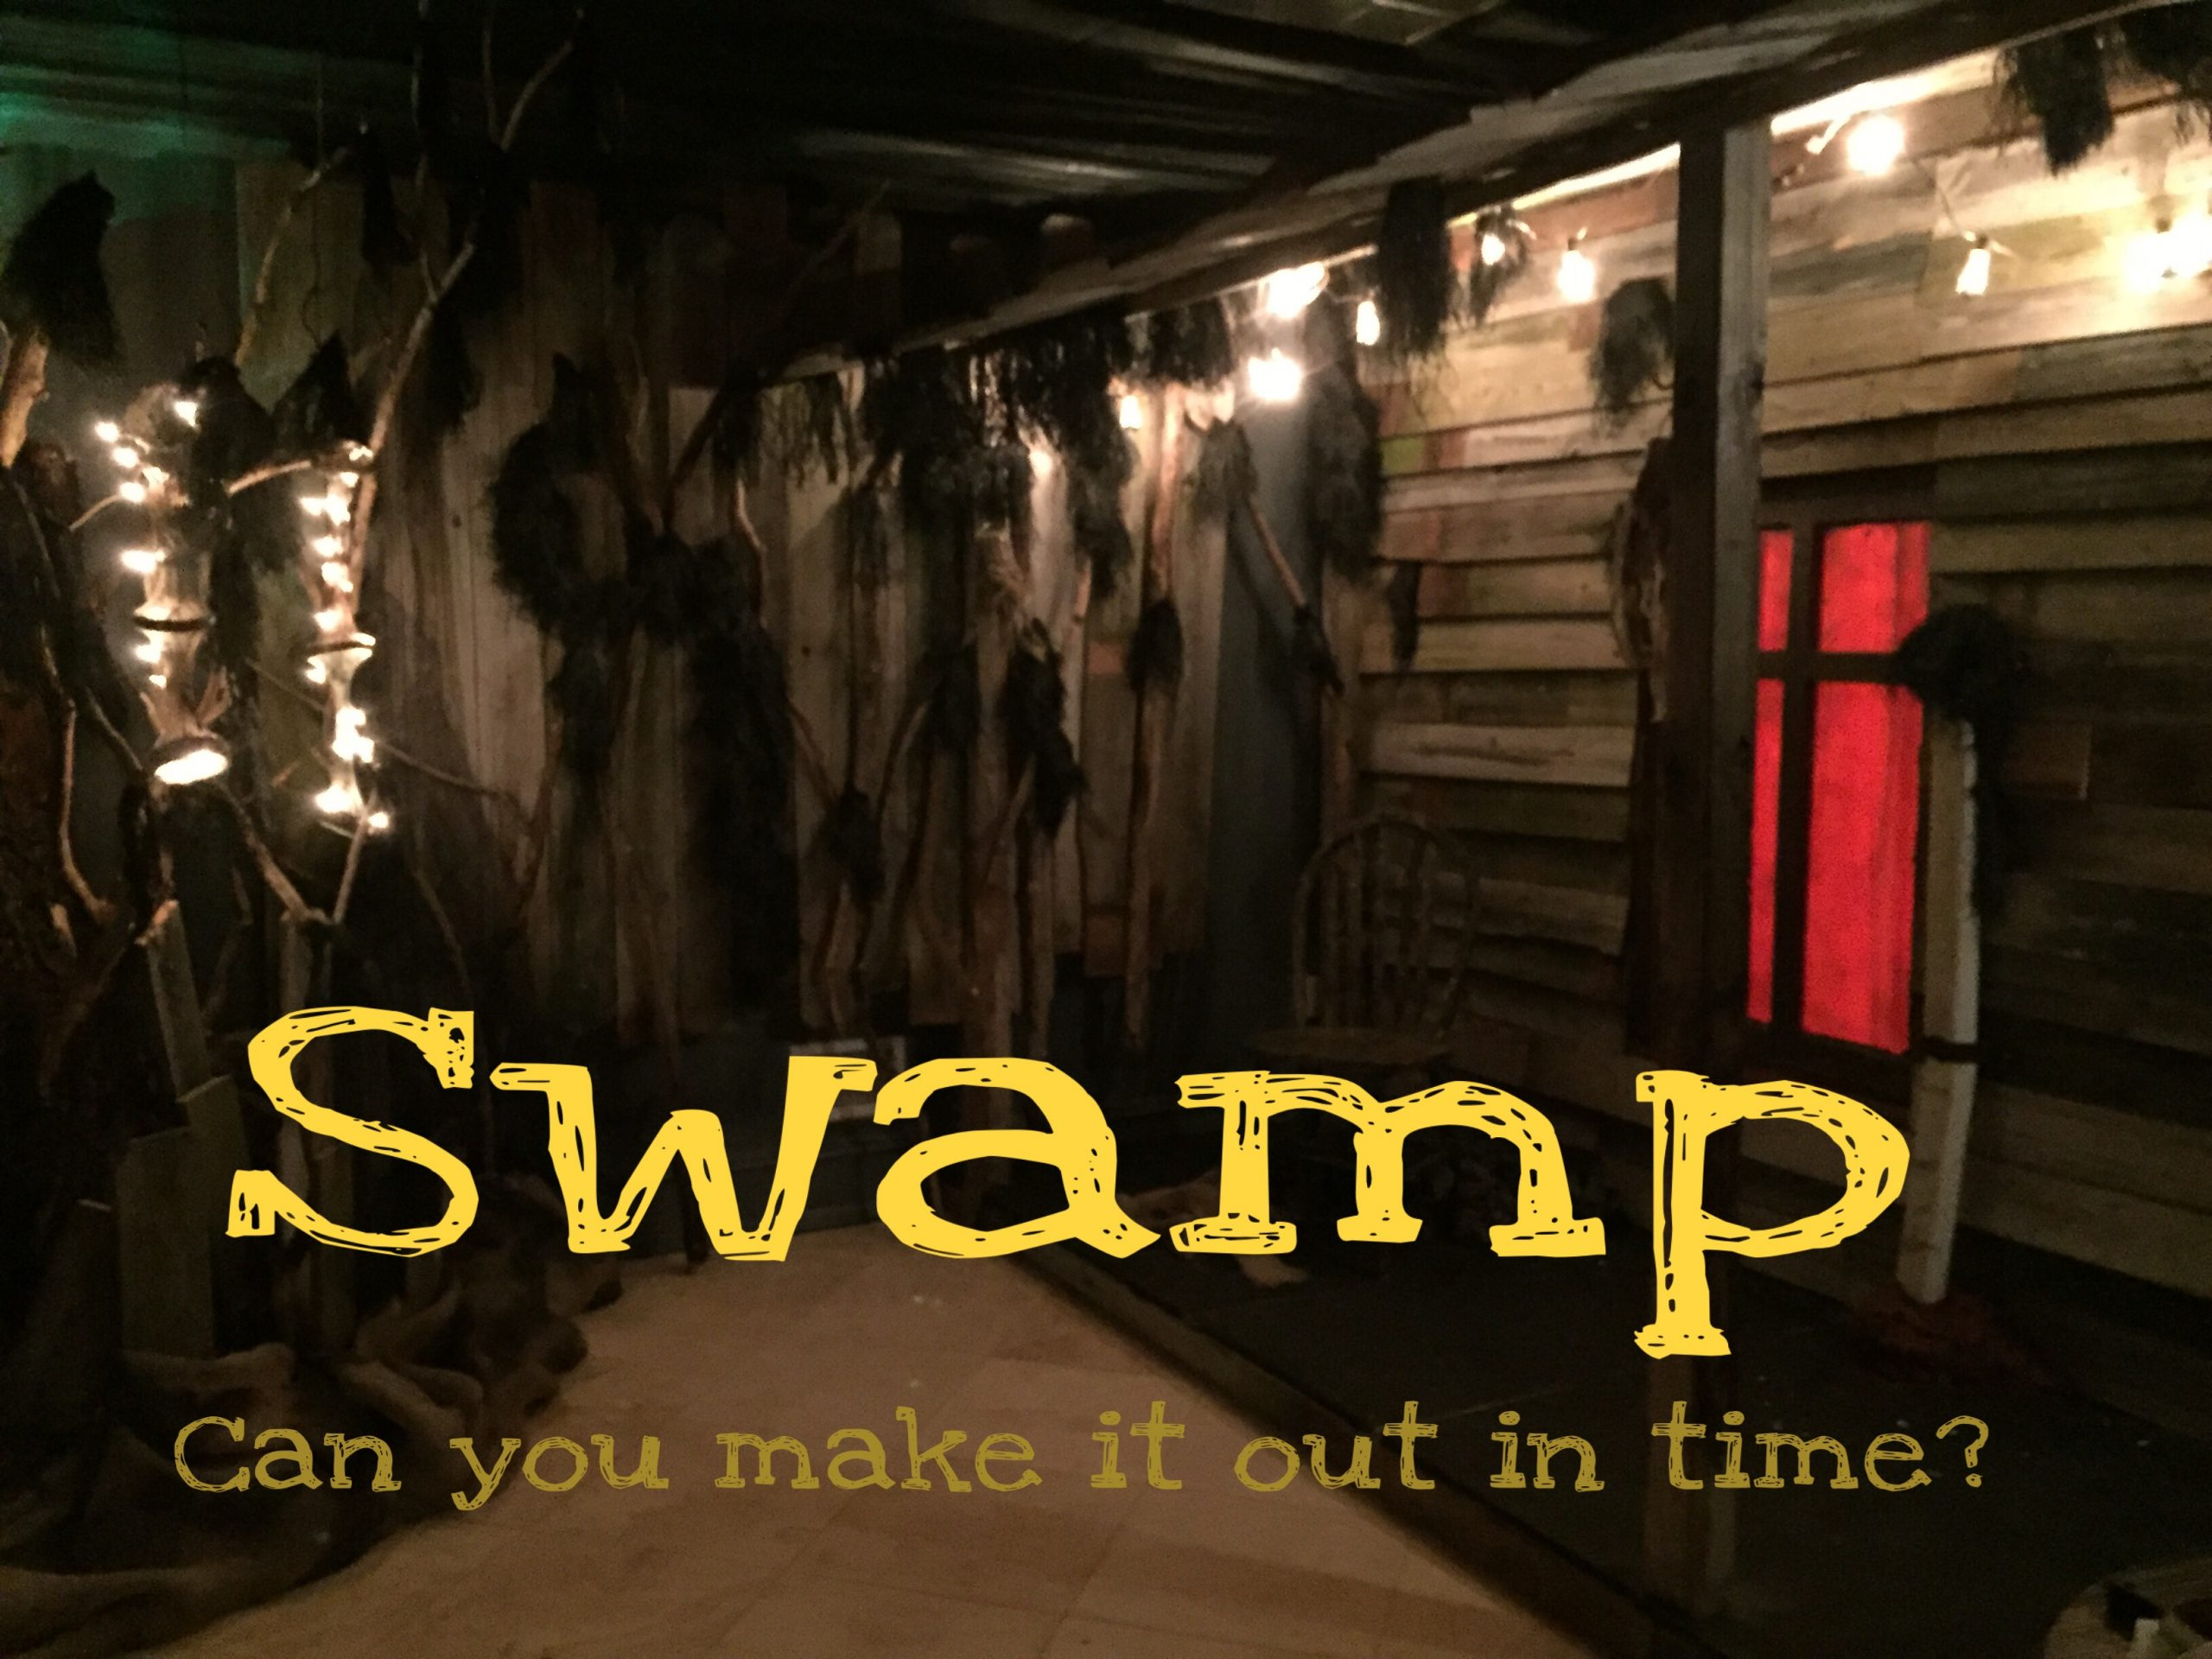 Escape The Puzzle offers a challenging swamp escape room in eastern New Jersey! Book online!